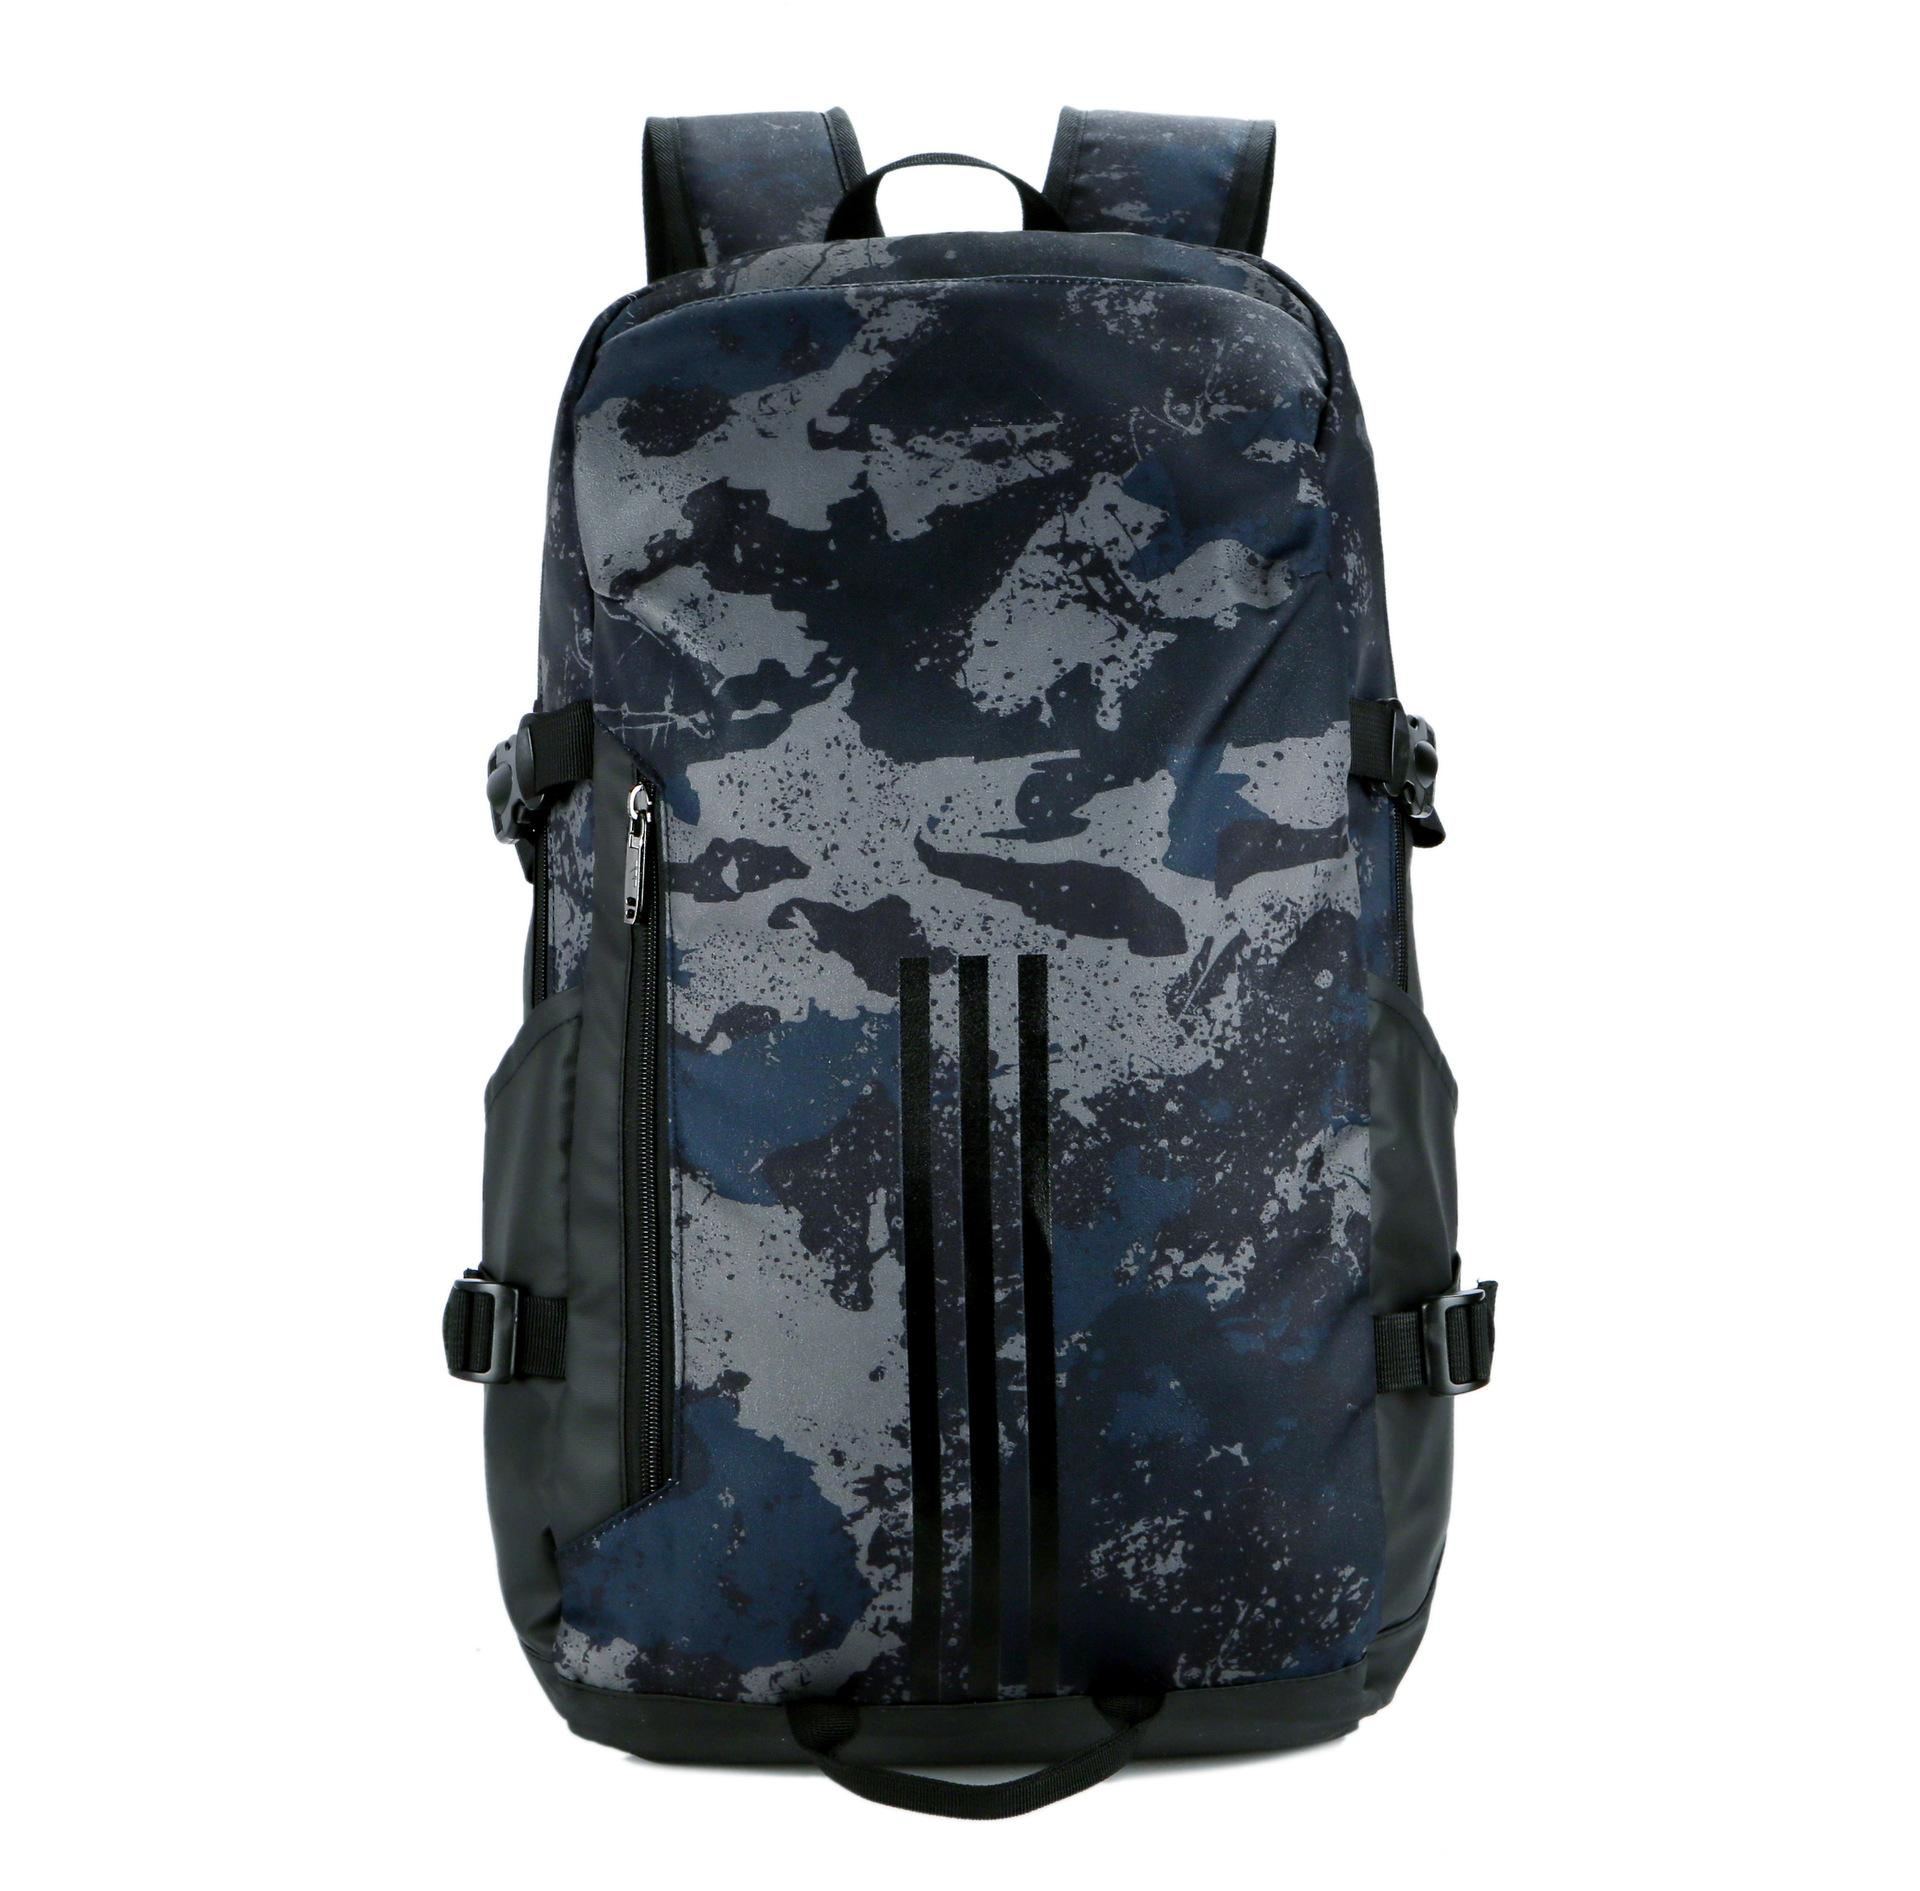 Backpack men's luxury stitching fashion camouflage student backpack outdoor large-capacity travel bag casual fashion new wholesale